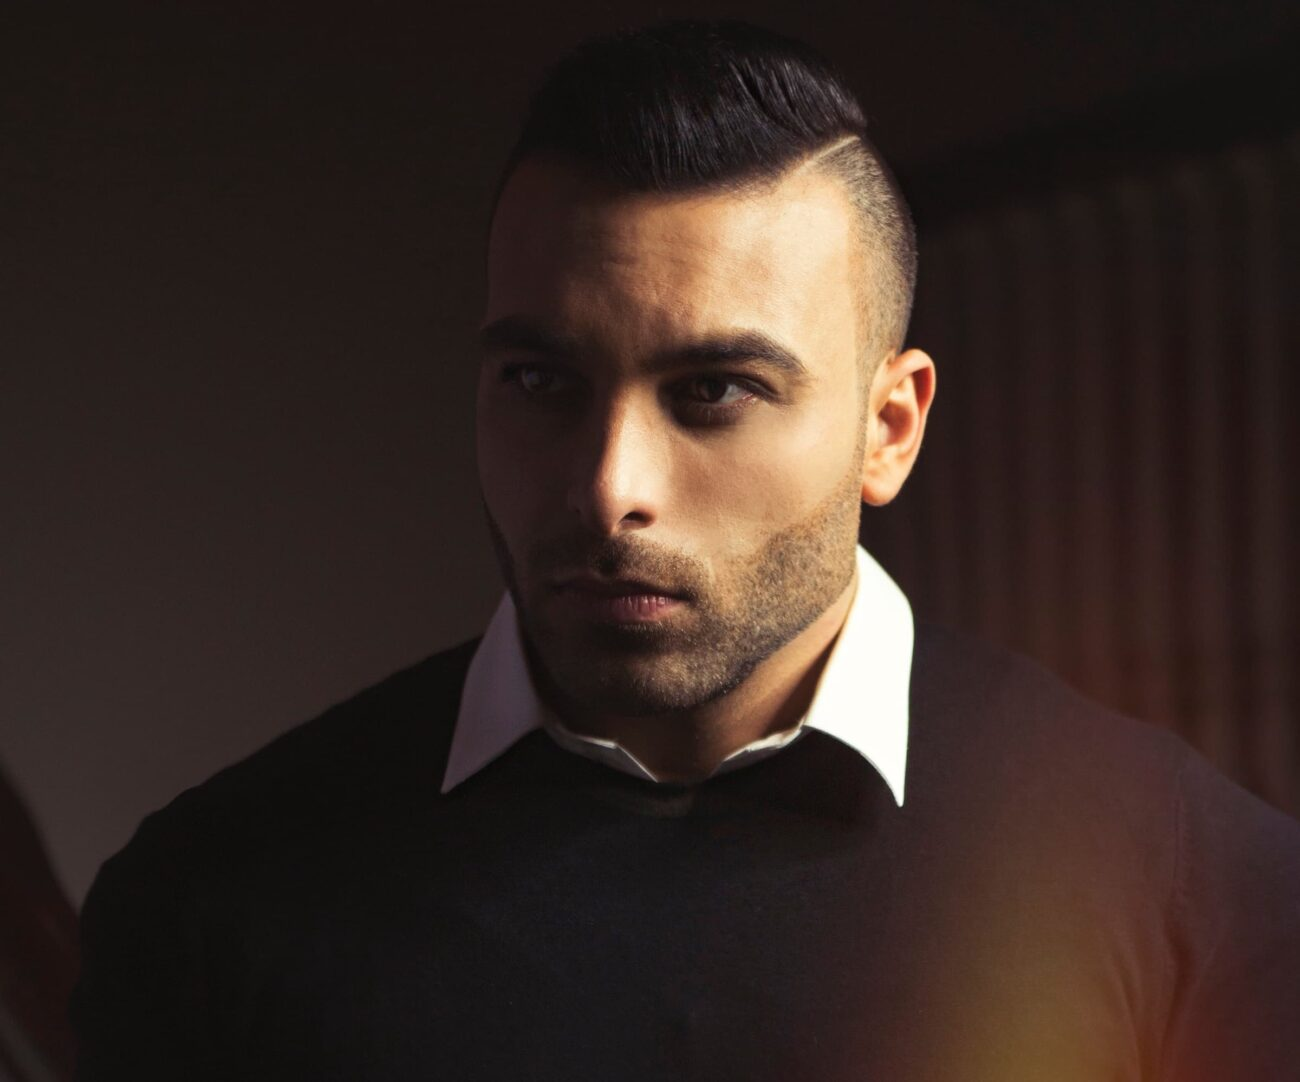 While Tarik Freitekh might not be the most recognized name in the entertainment industry, it's definitely a name you should watch out for. Here's why.